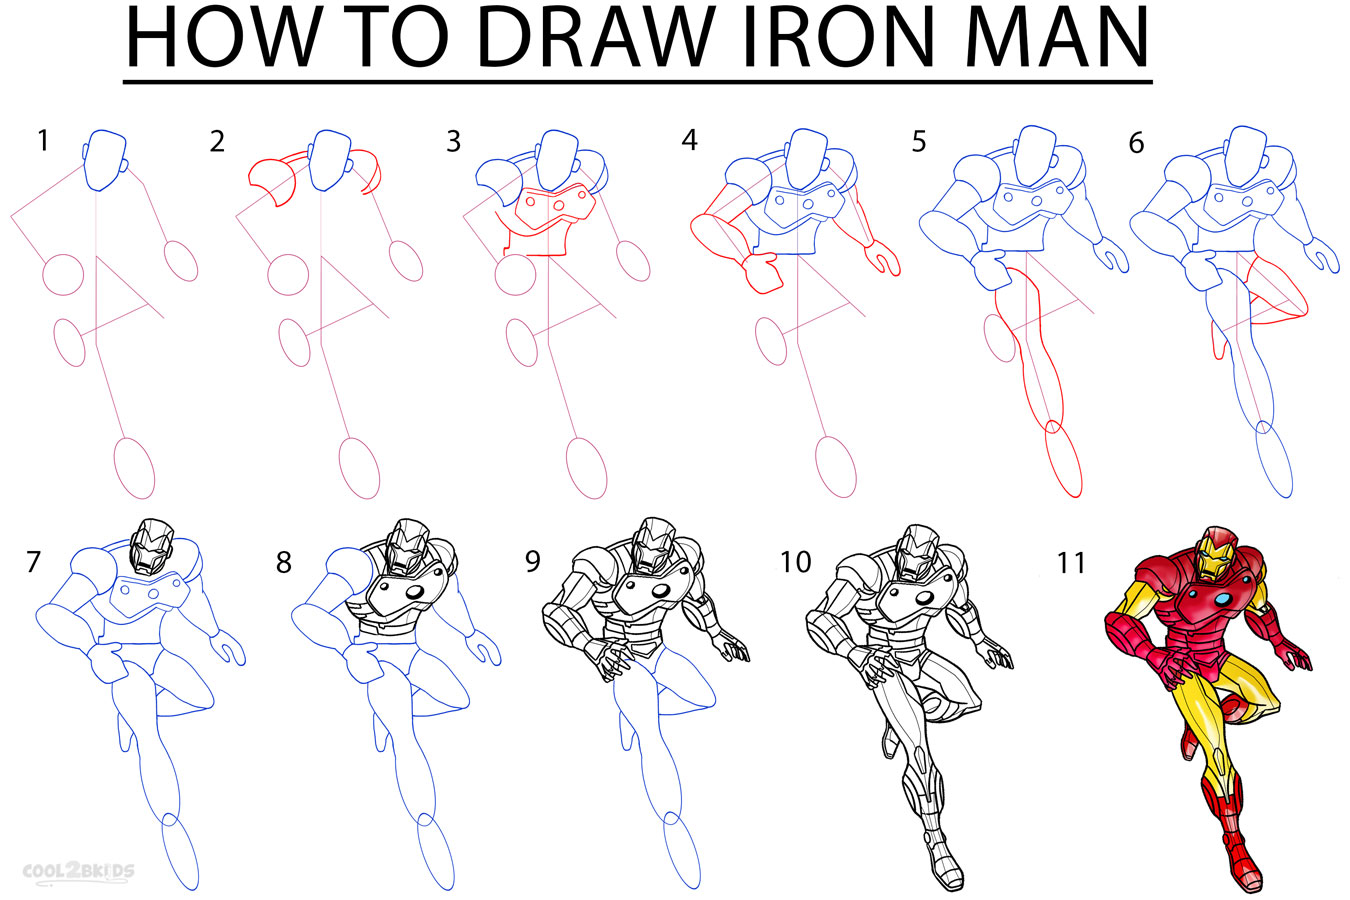 How To Draw Iron Man (Step by Step Pictures) | Cool2bKids